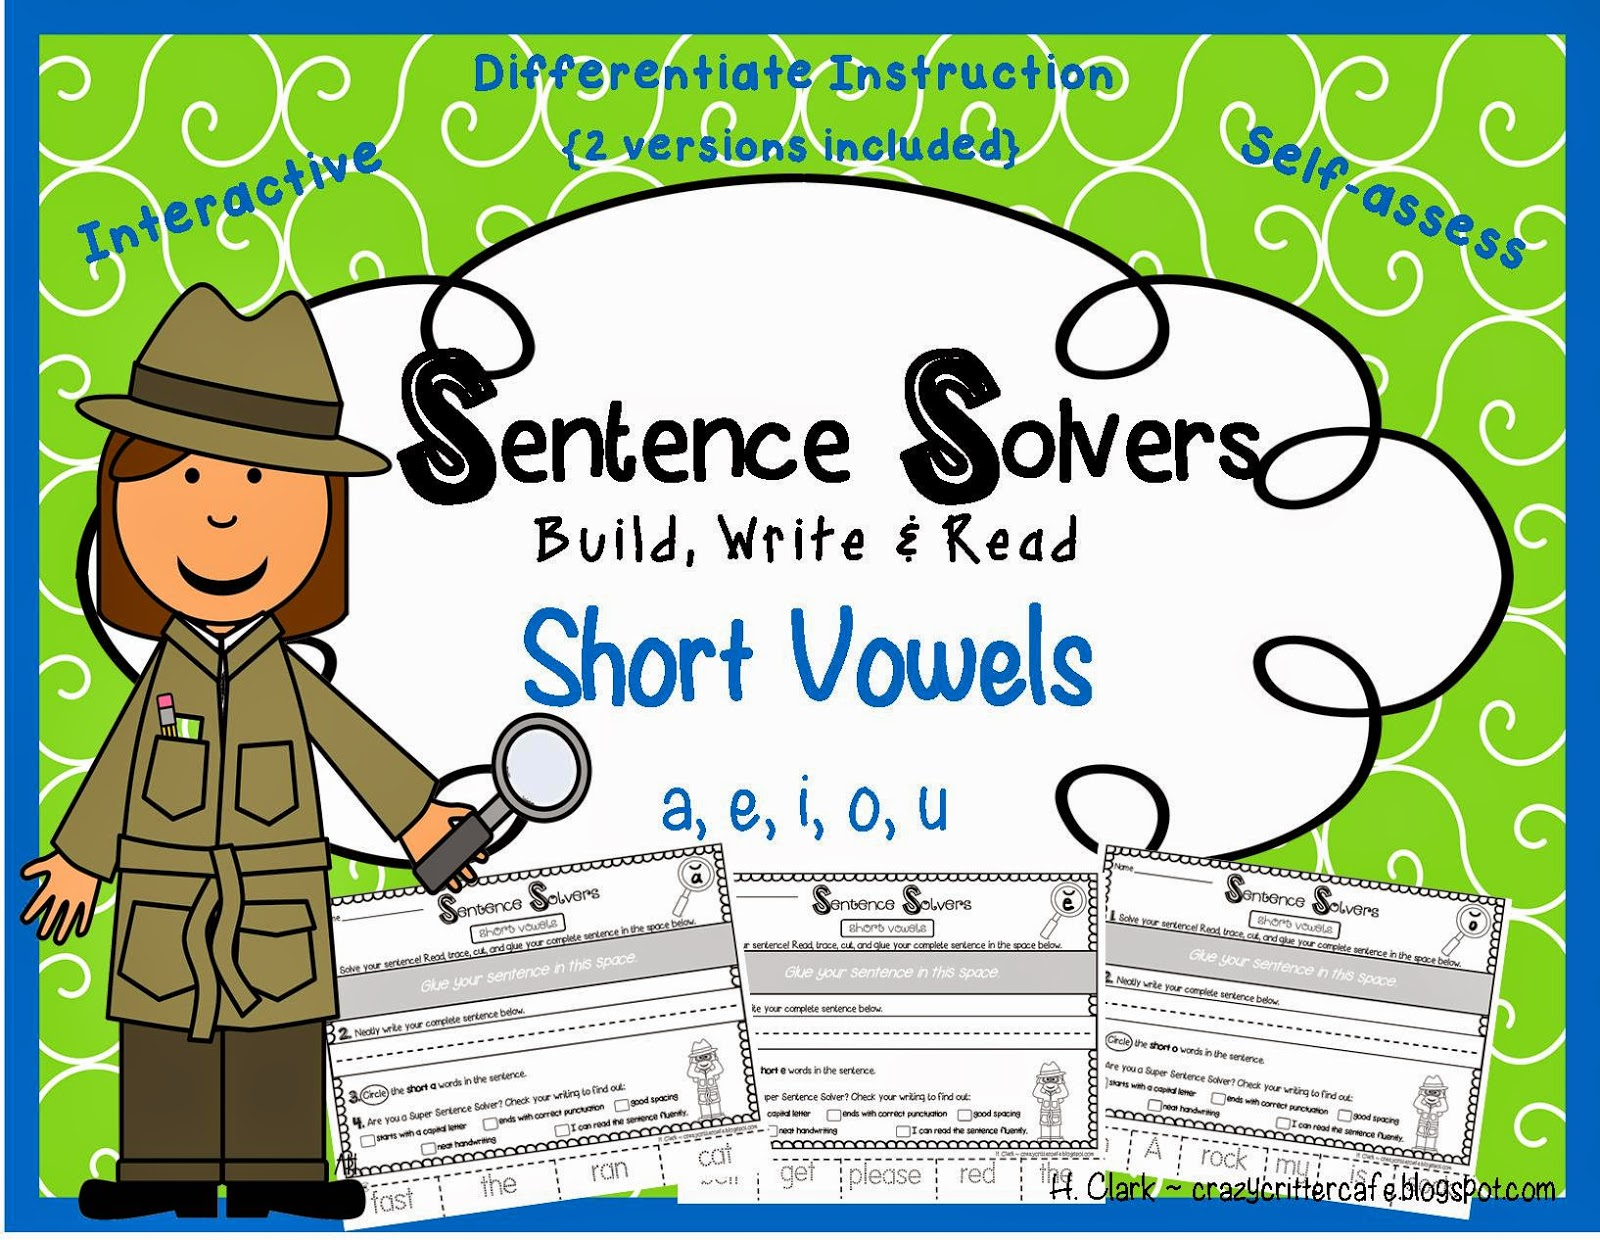 http://www.teacherspayteachers.com/Product/Sentence-Solvers-Short-Vowels-Interactive-Sentence-Building-Activity-1306356